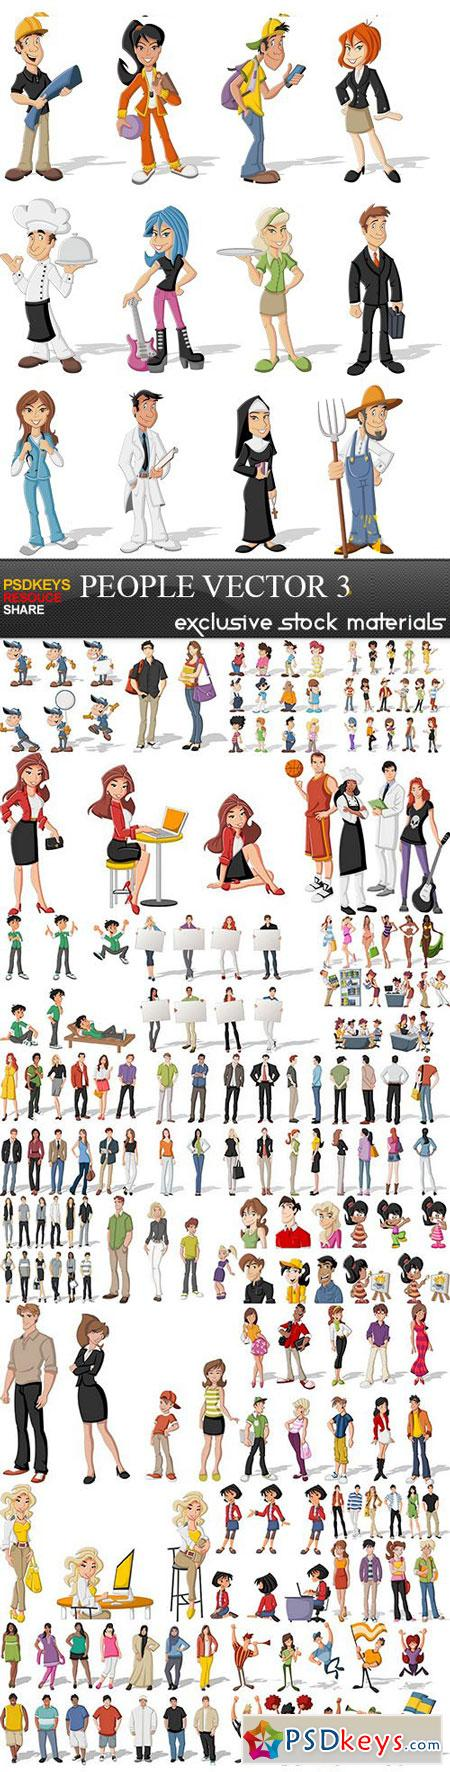 T shirt design 7 25xeps - People Vector Collection 3 25xeps